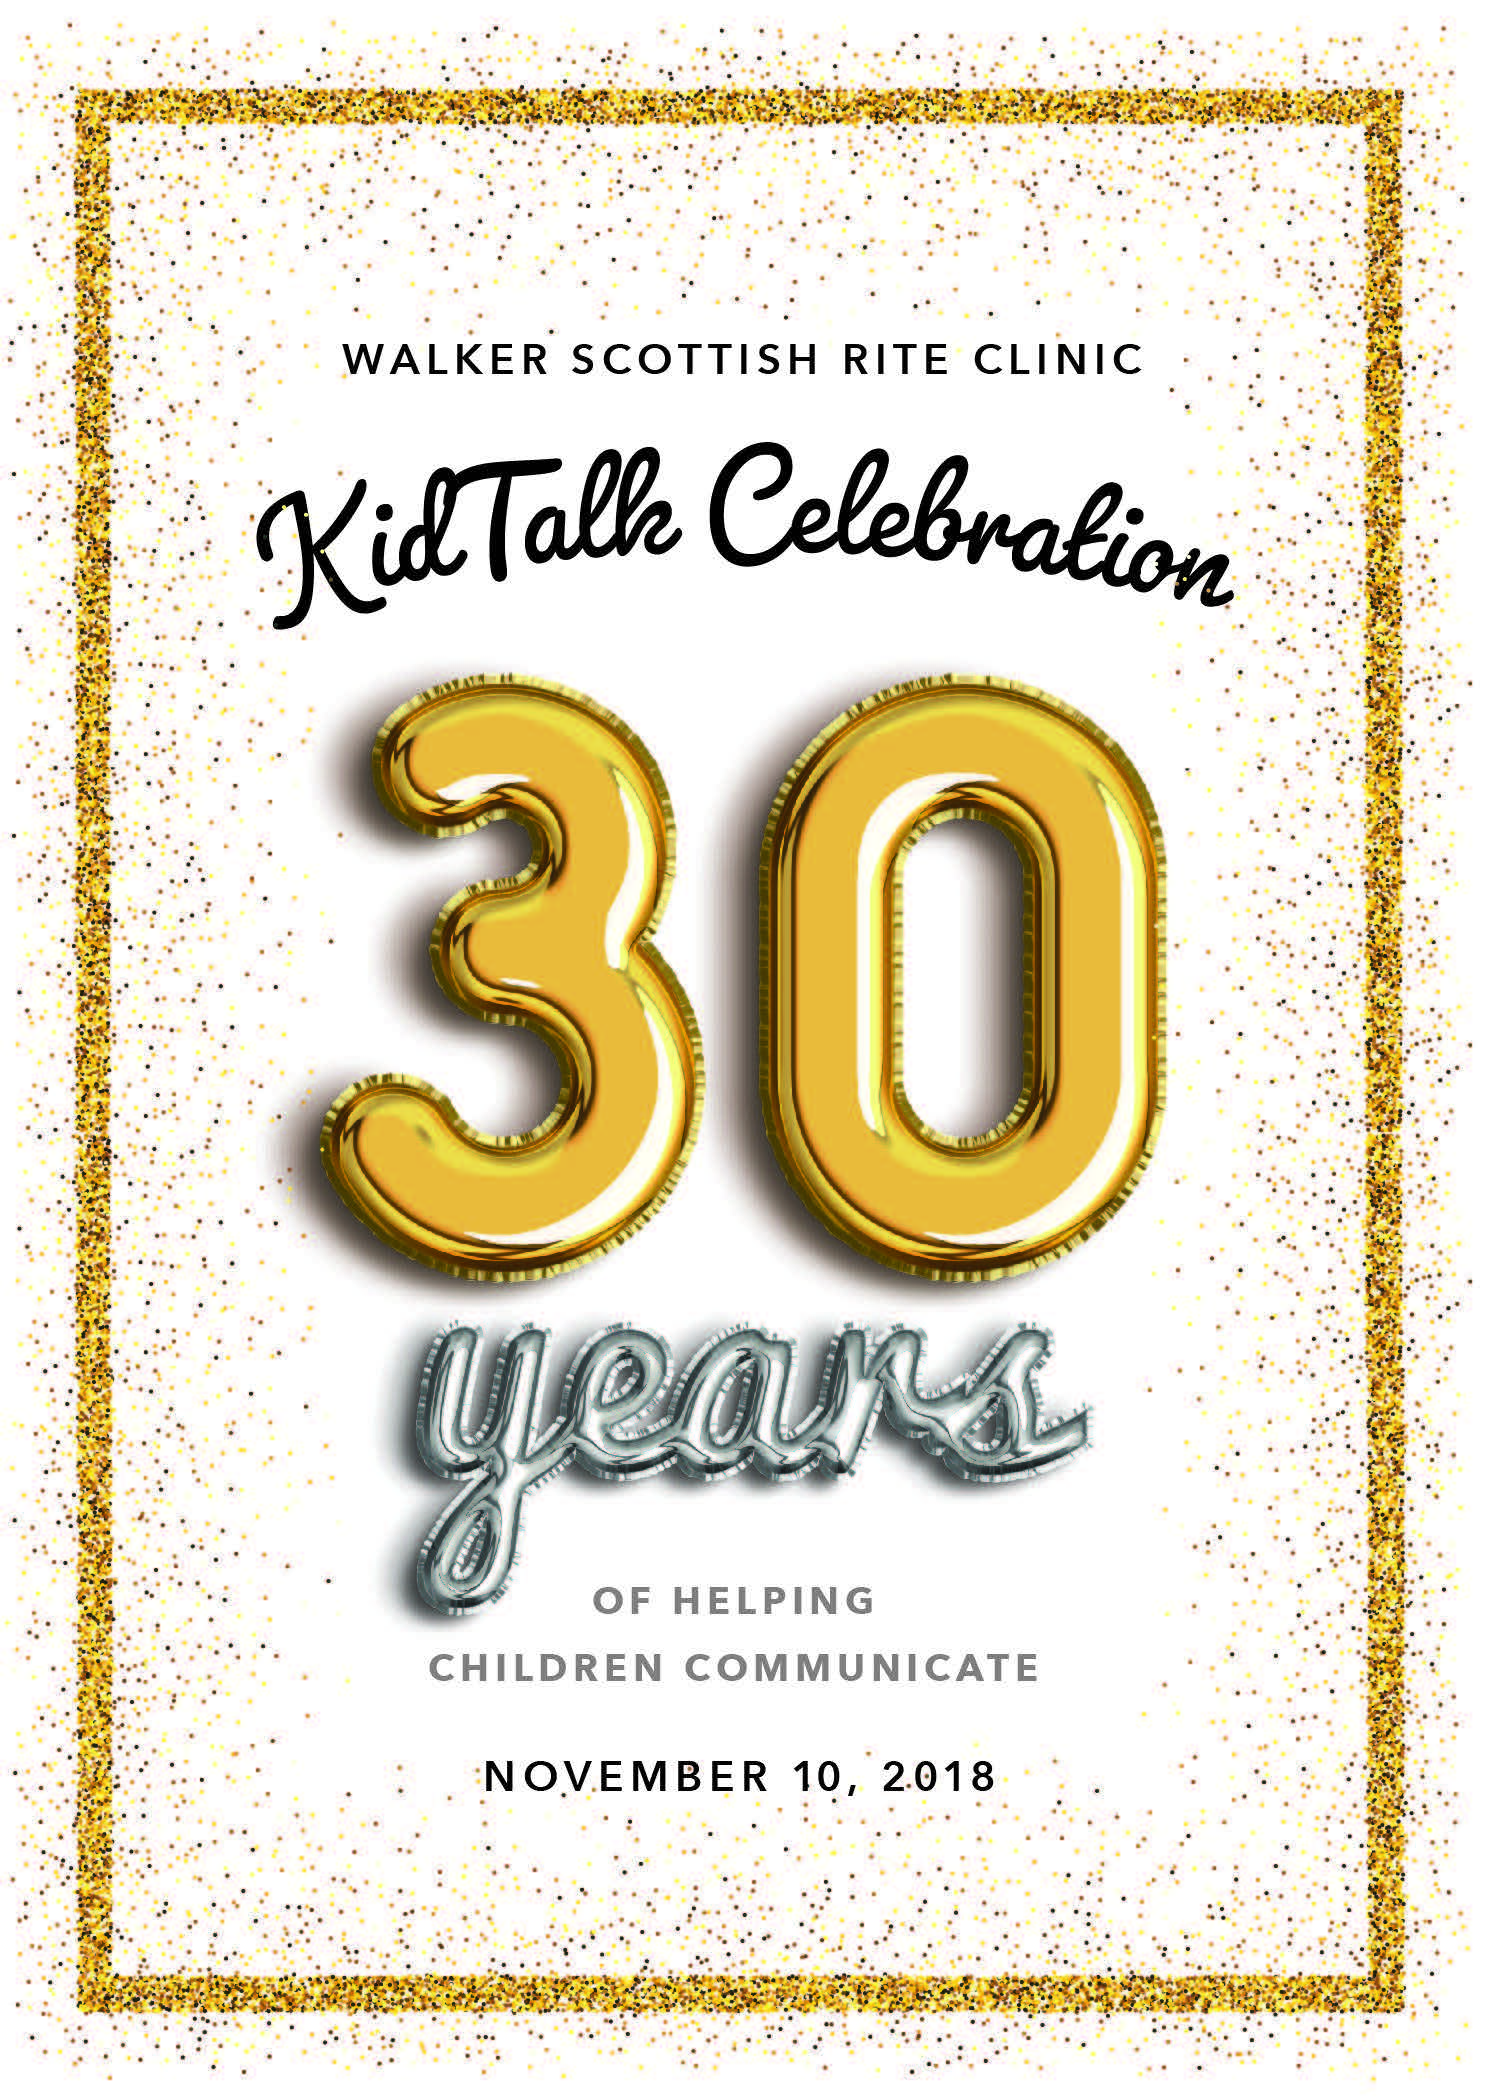 KidTalk Celebration - 30 Years